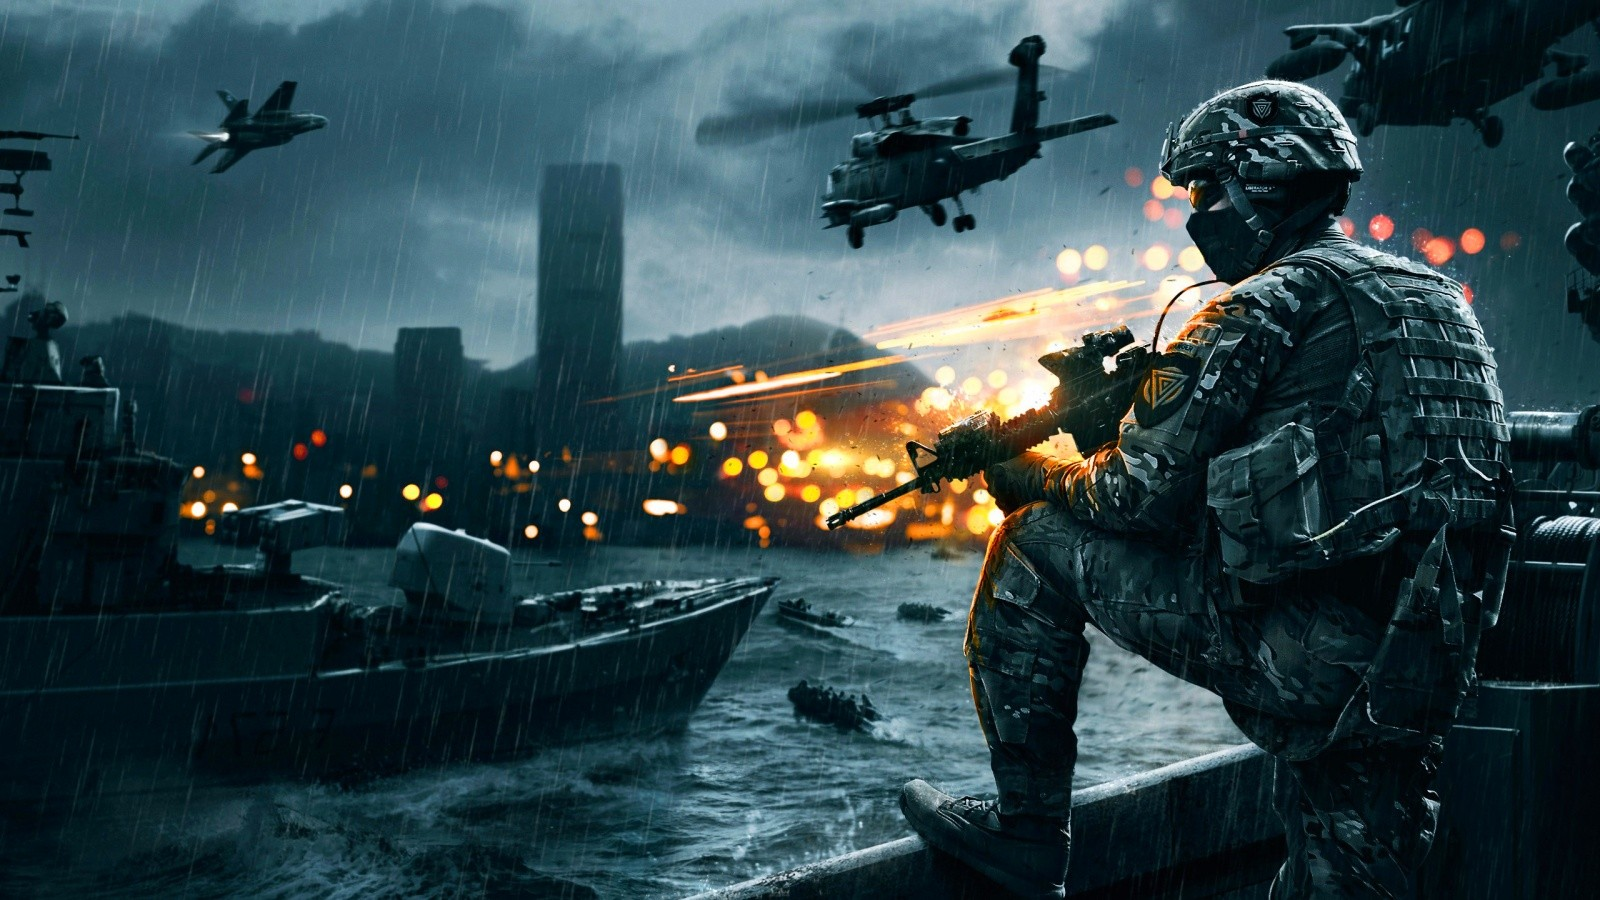 В последующем году выйдет Battlefield: Bad Company 3